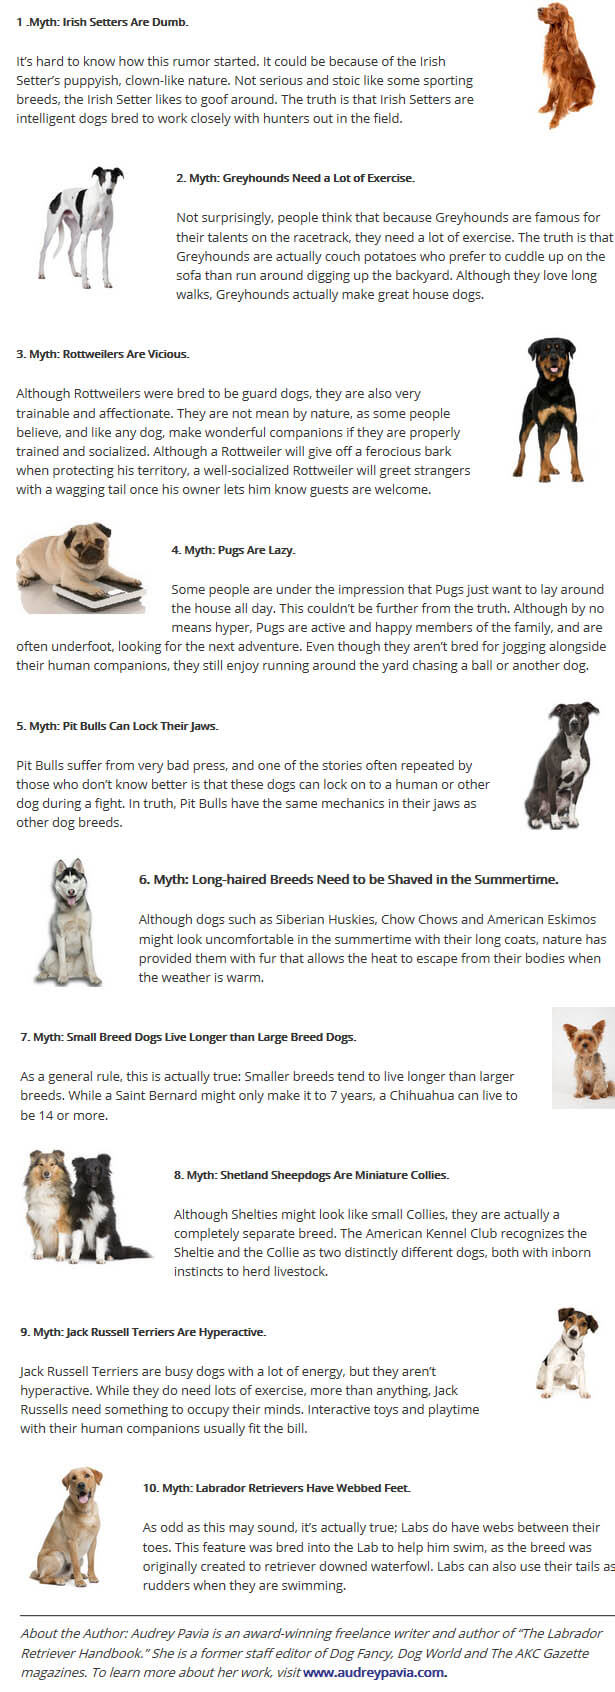 DOG BREED MISCONCEPTIONS